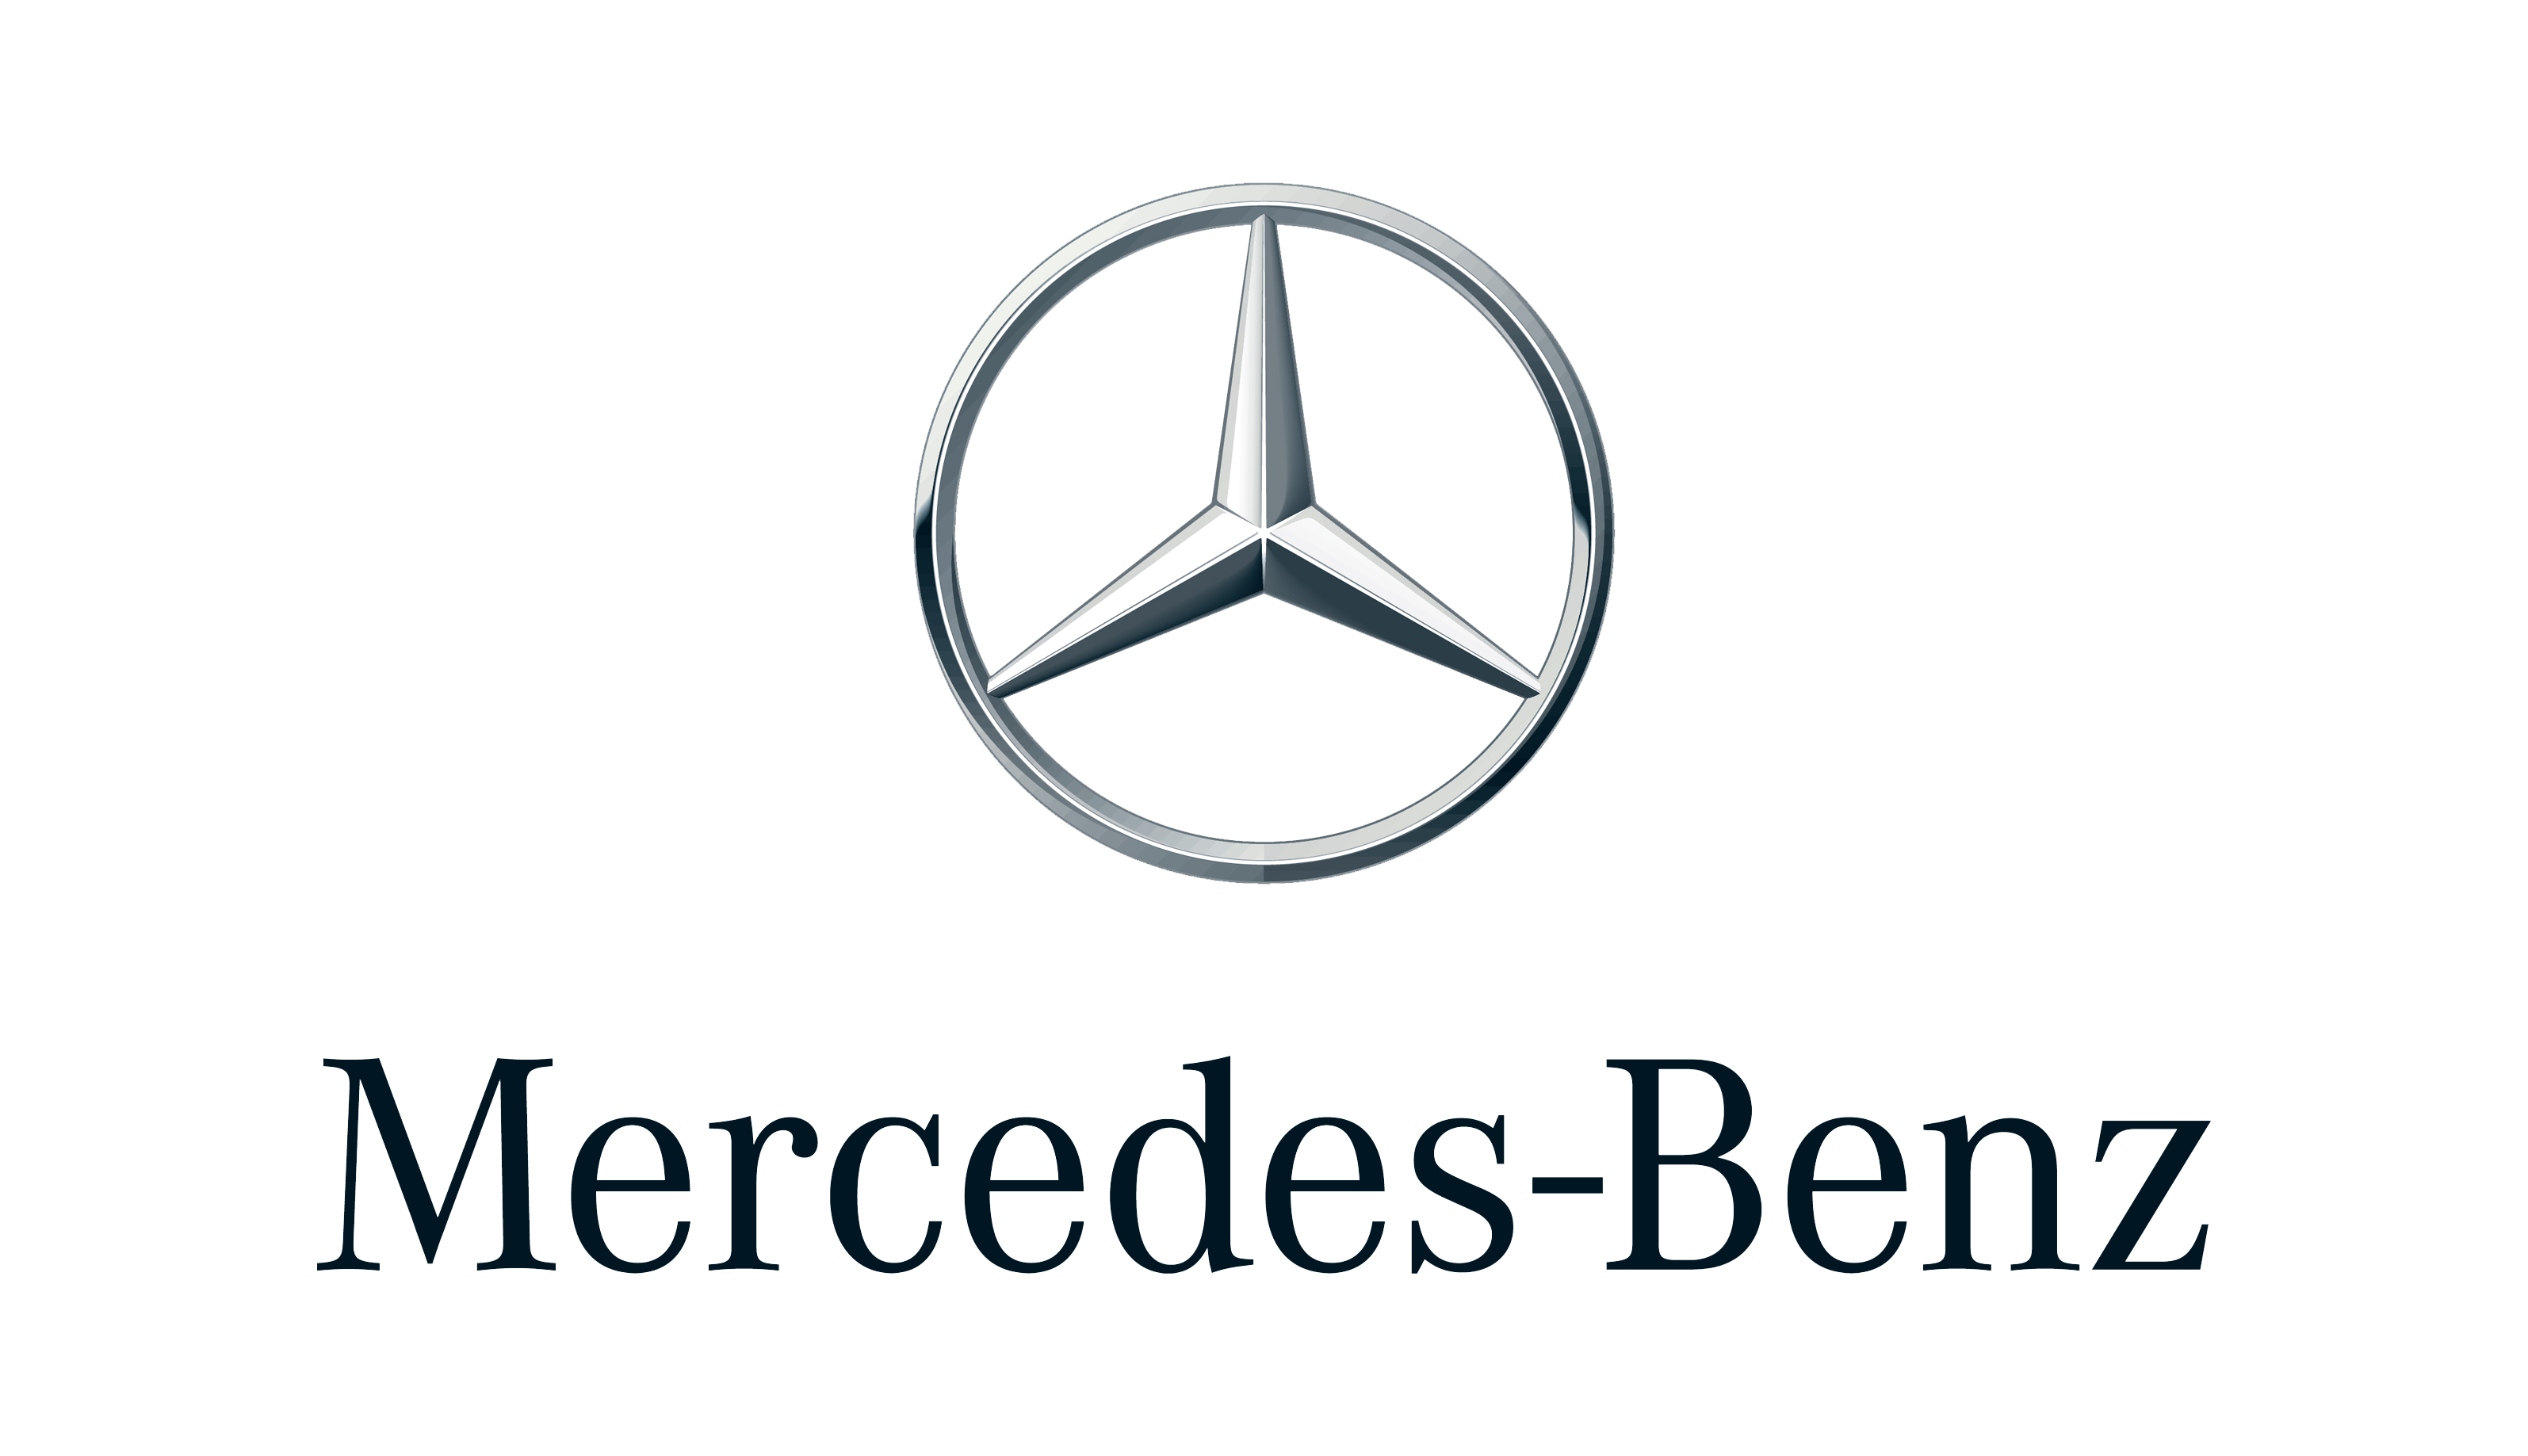 Mercedes-Benz Innovation